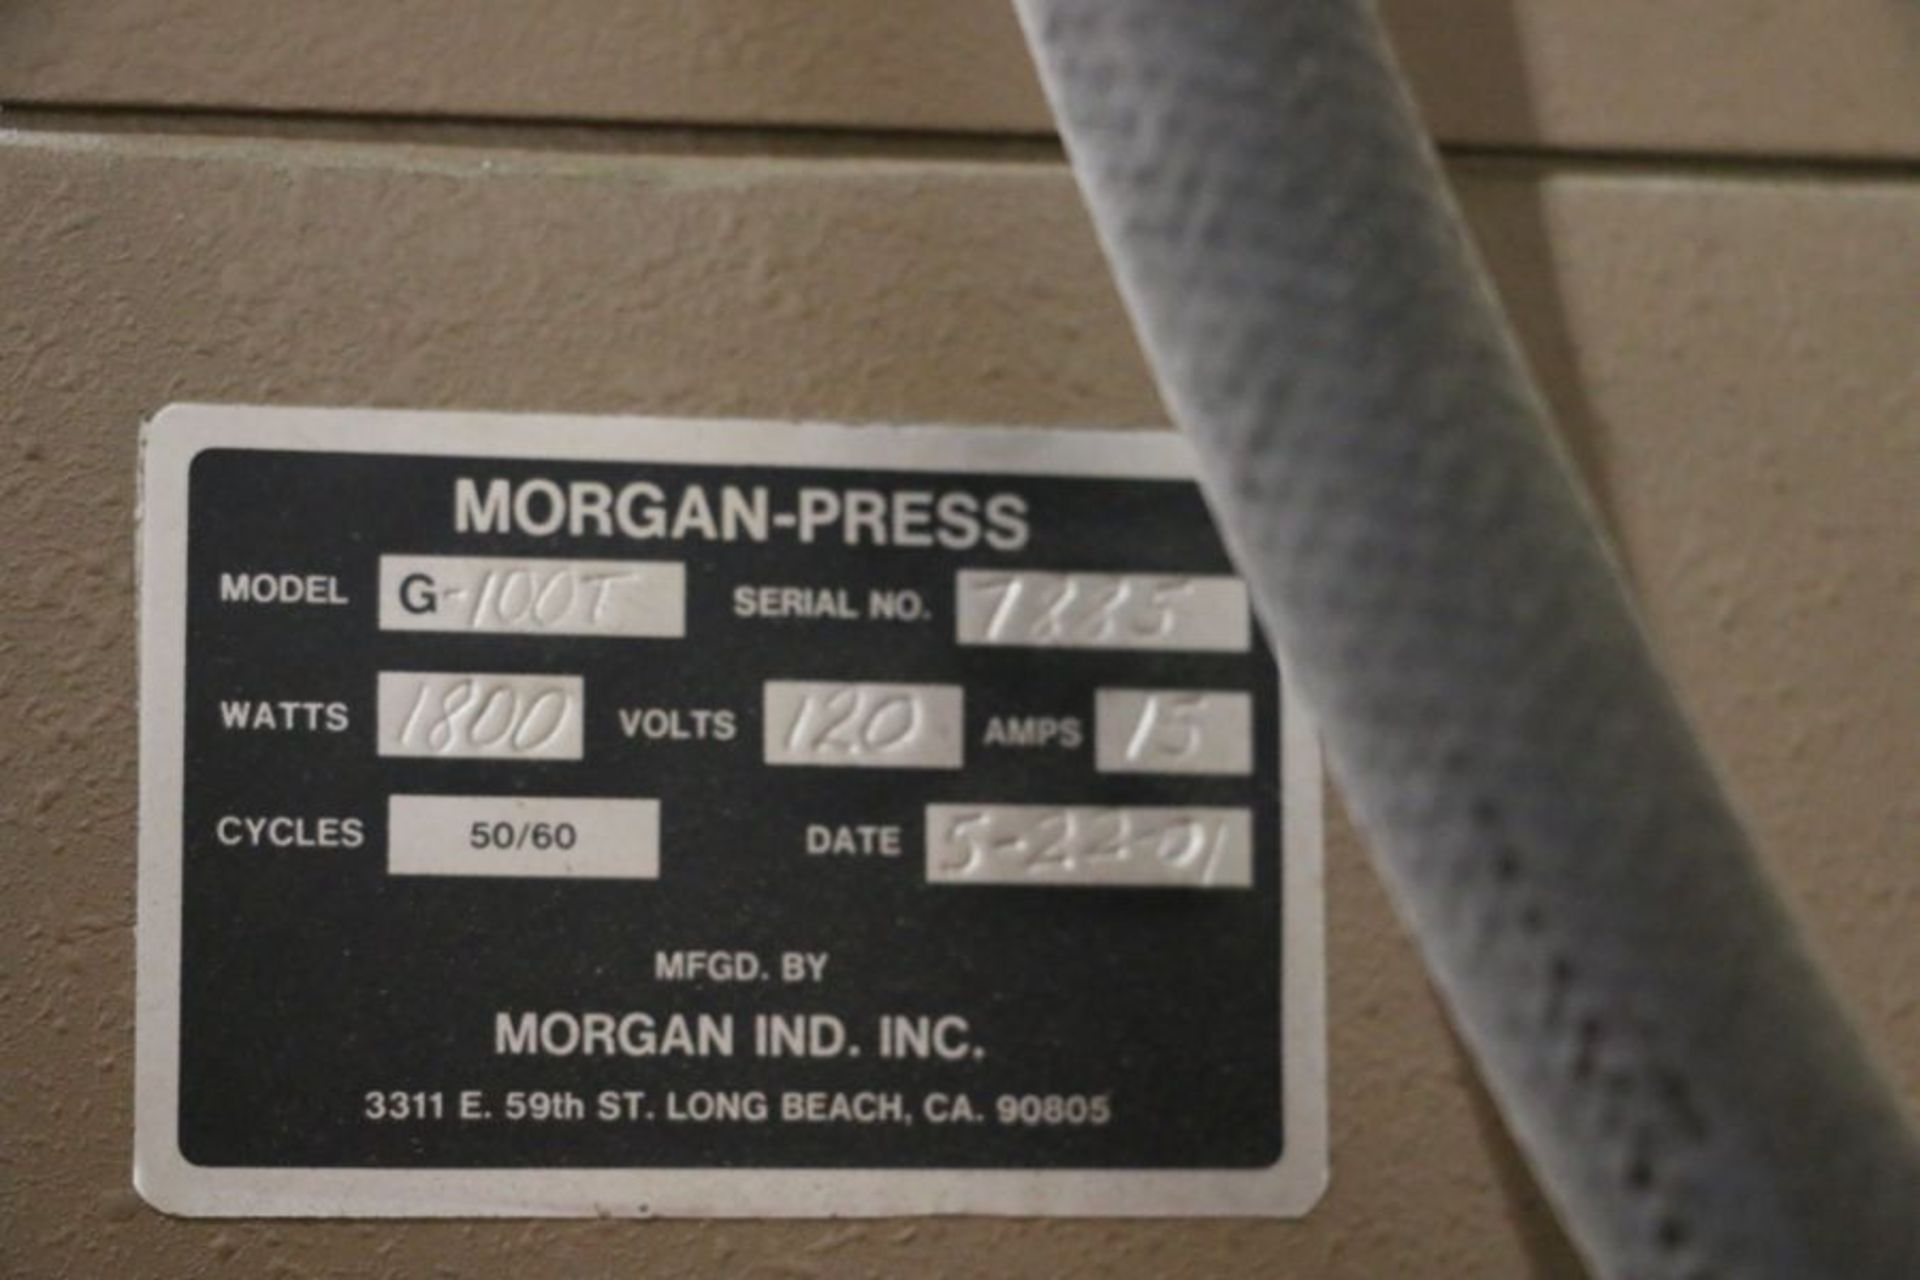 Morgan Press G-100T Vertical Plastic Injection Molding Press, New 2001 - Image 4 of 4